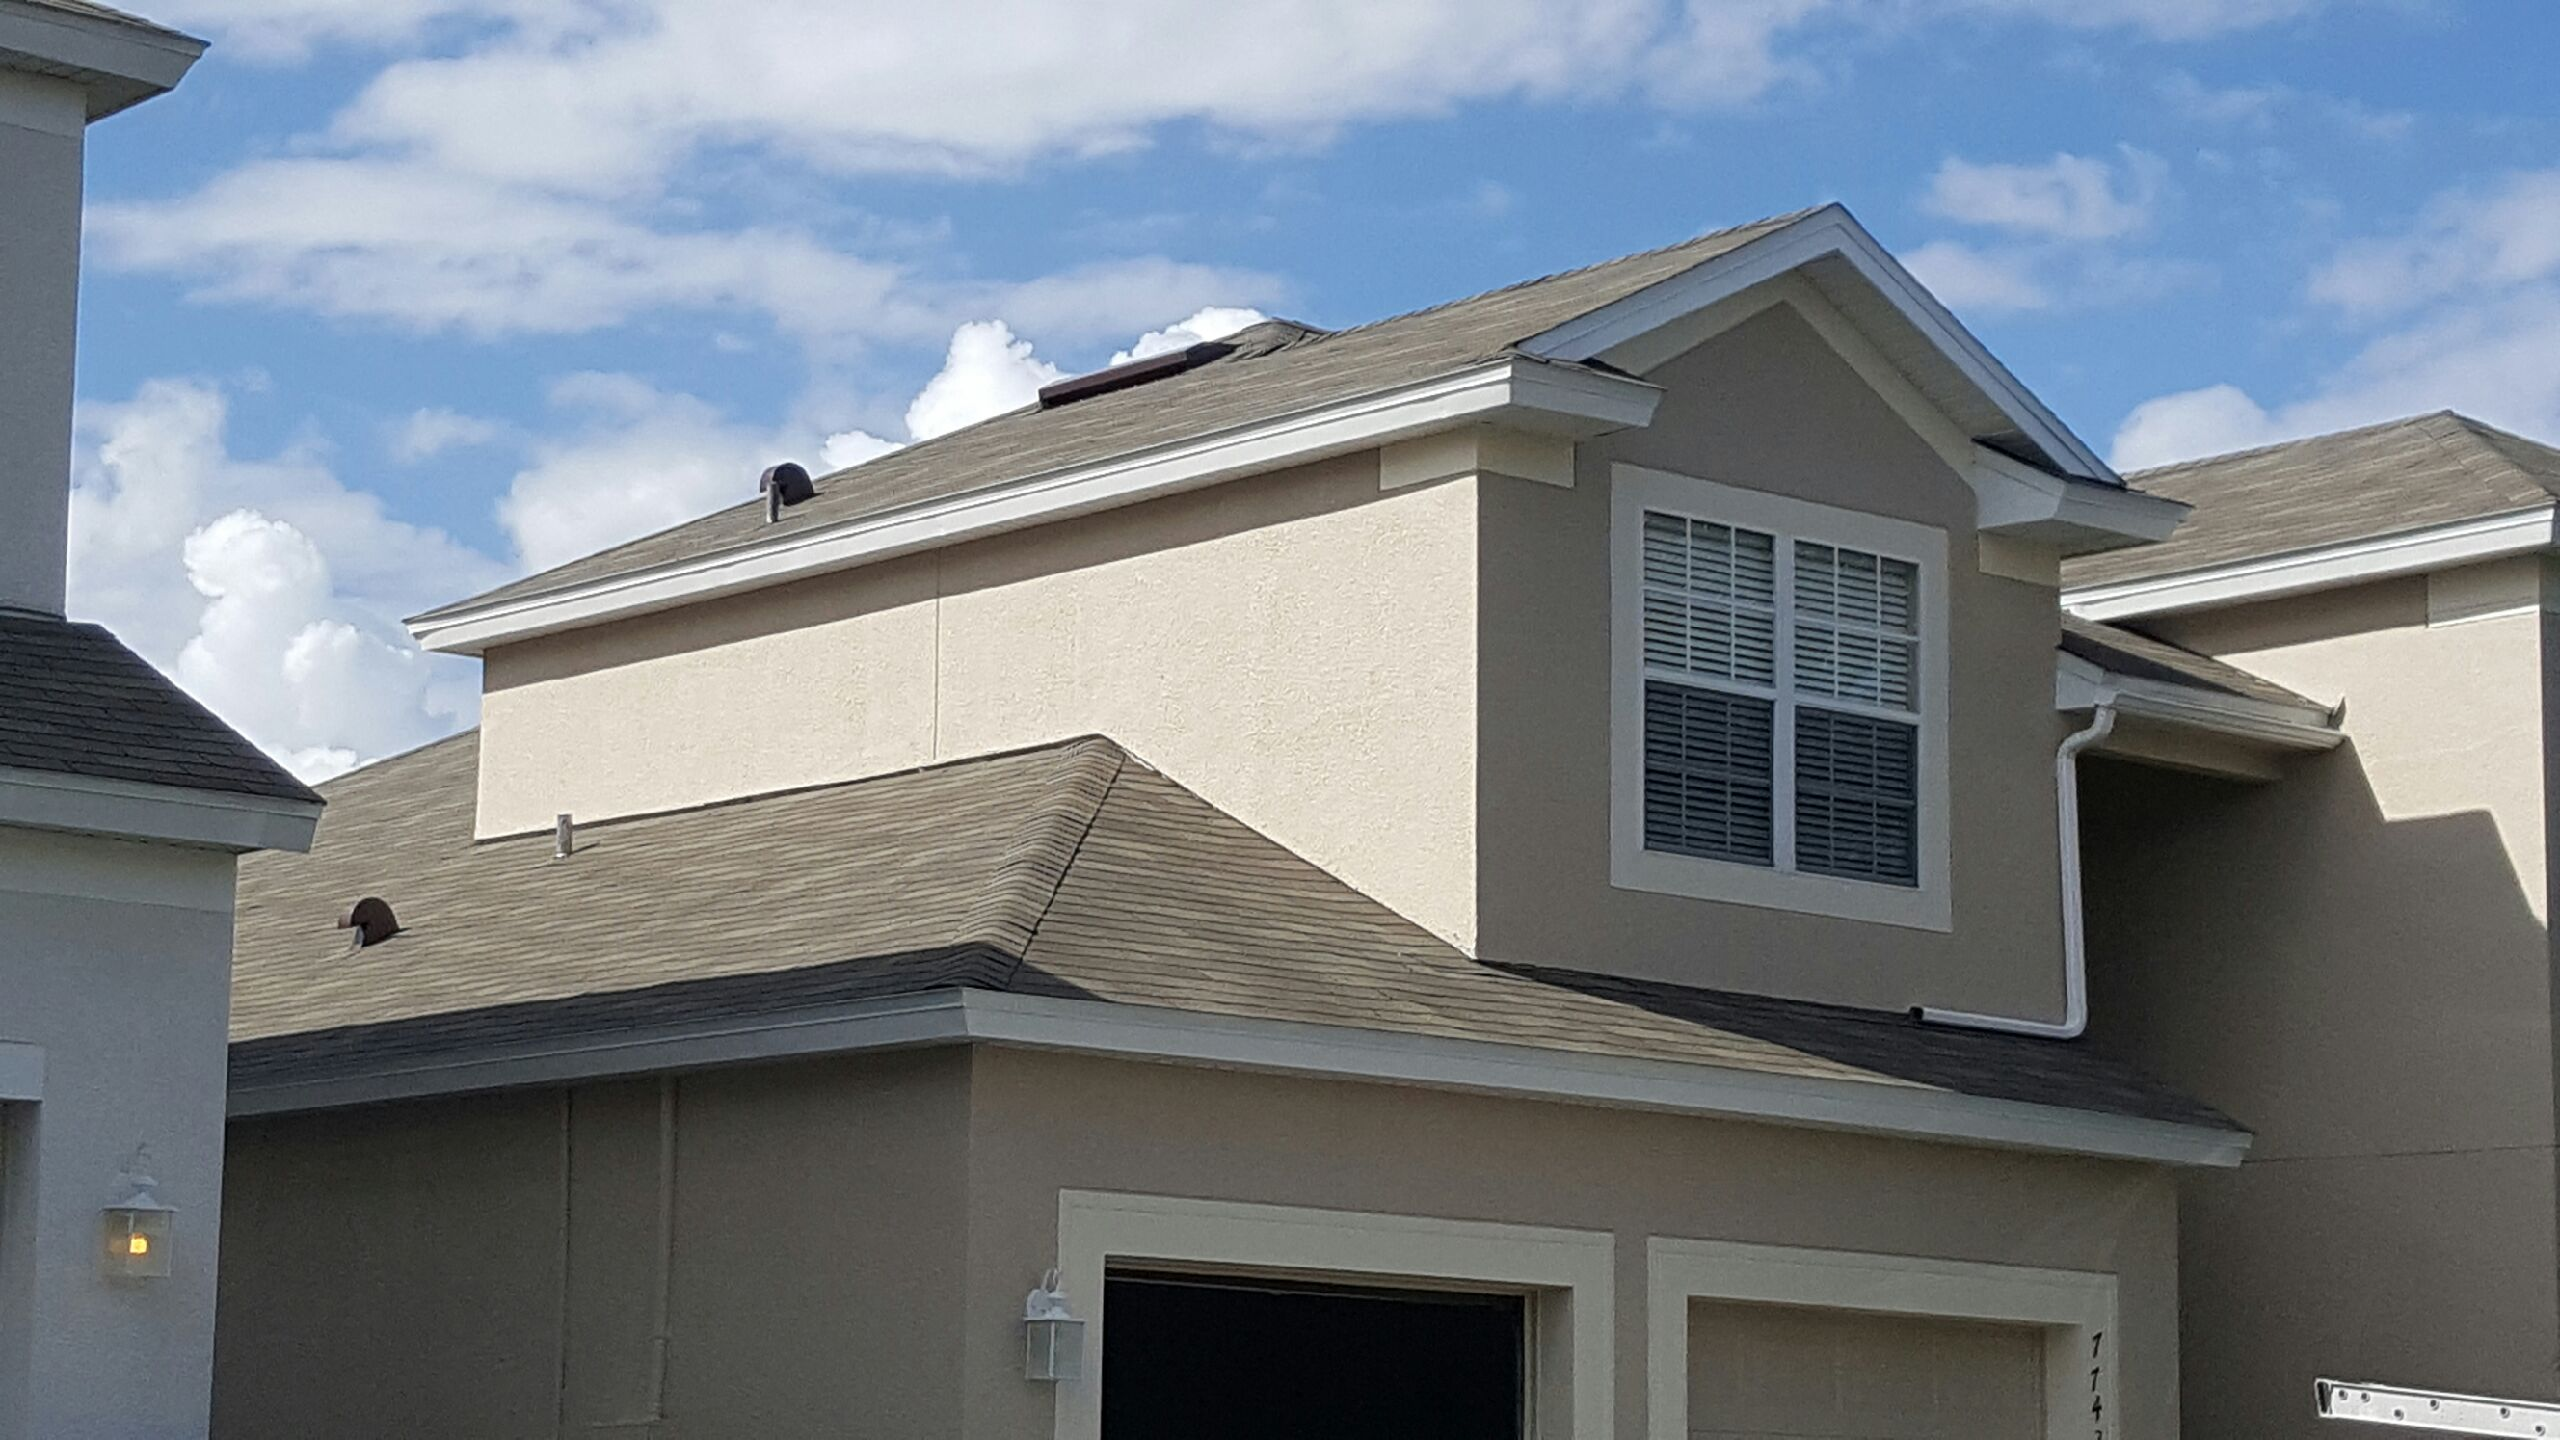 What Roof Styles Are Popular In Florida City Roofing